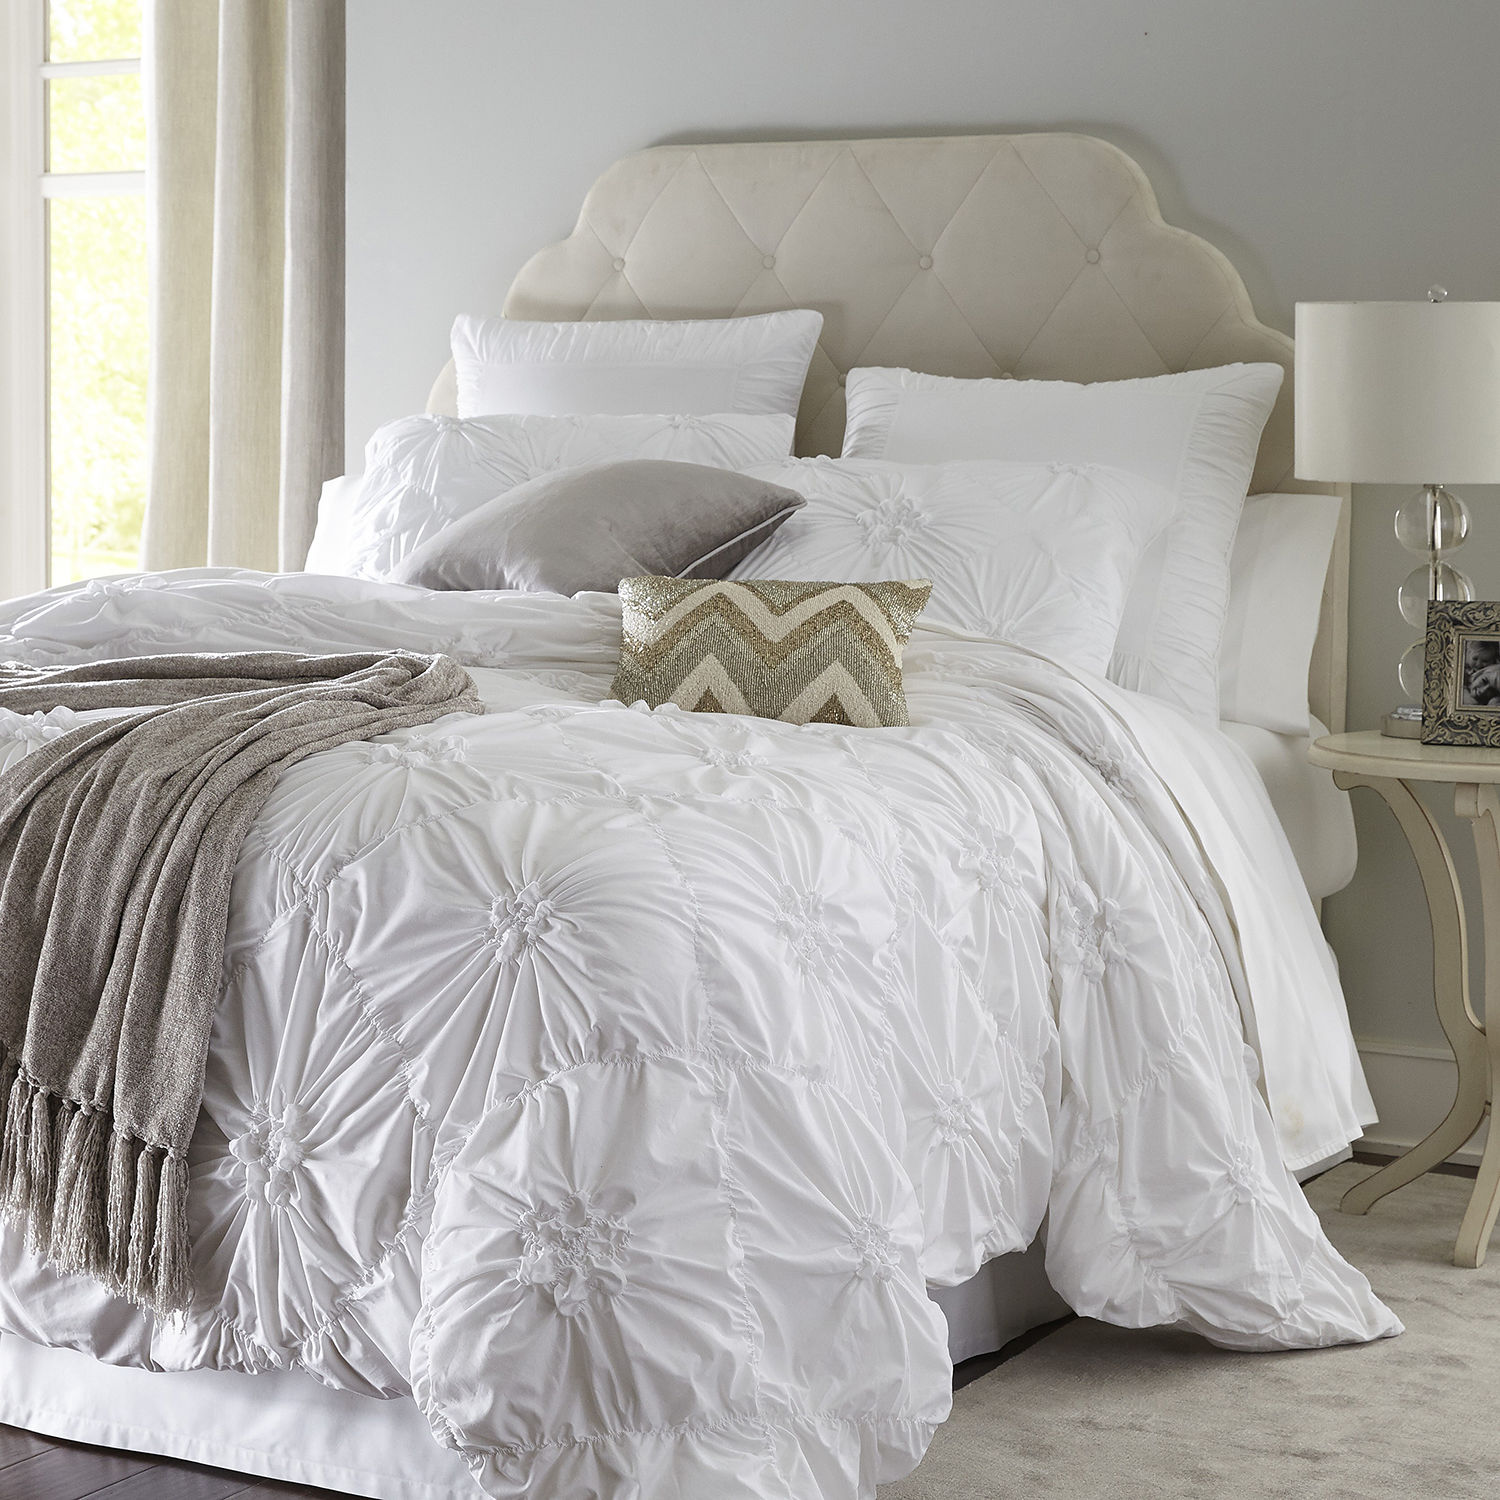 Target Comforter Sets | White Duvet Cover | Bed Bath and Beyond Comforter Sets